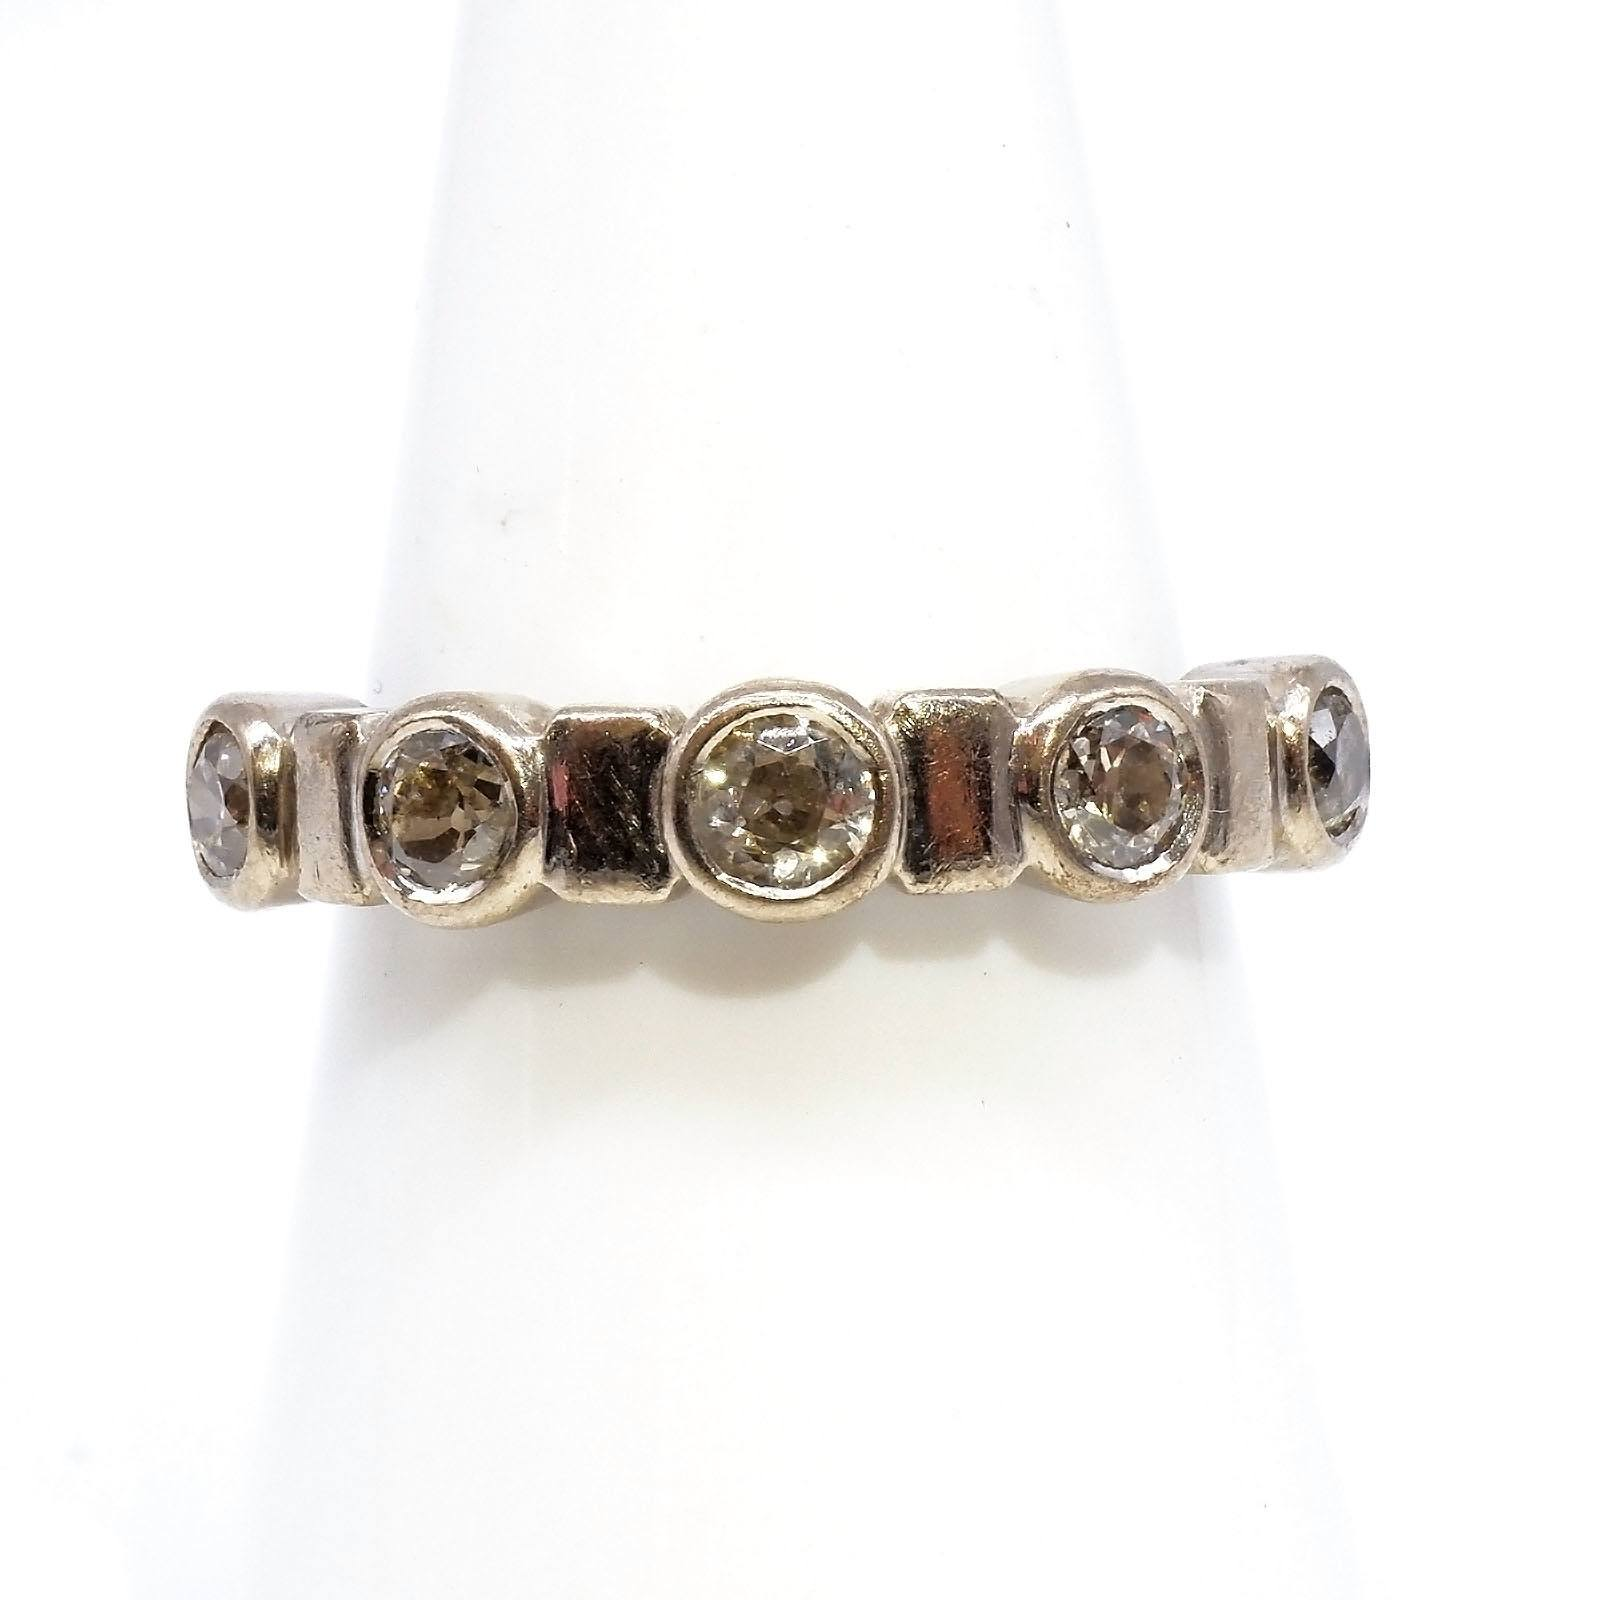 '18ct White Gold Diamond Ring with Five Old European Cut Diamonds in Bezel Setting, 6.4g'